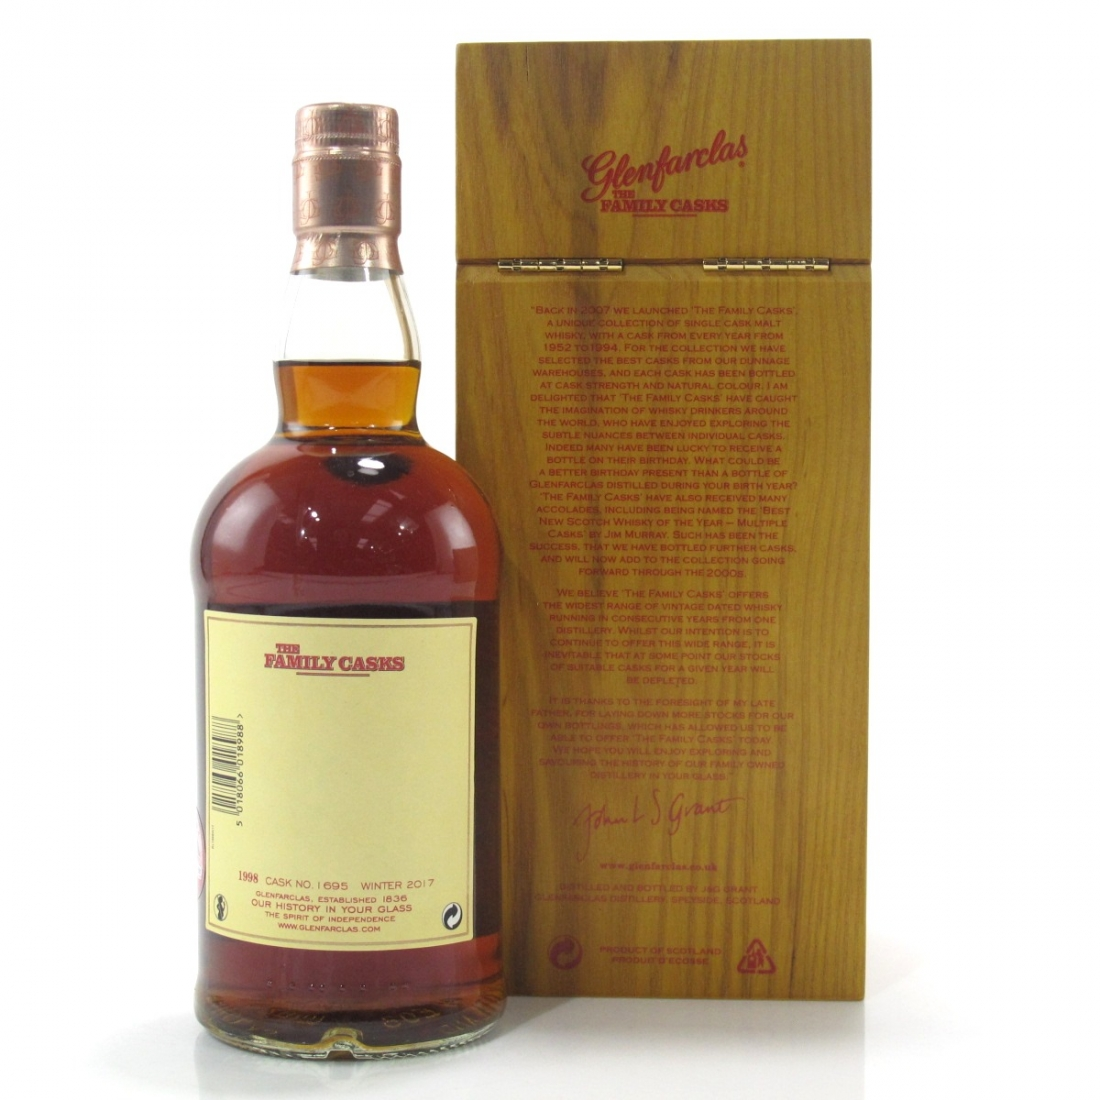 Glenfarclas 1998 Family Cask #1695 / Winter 2017